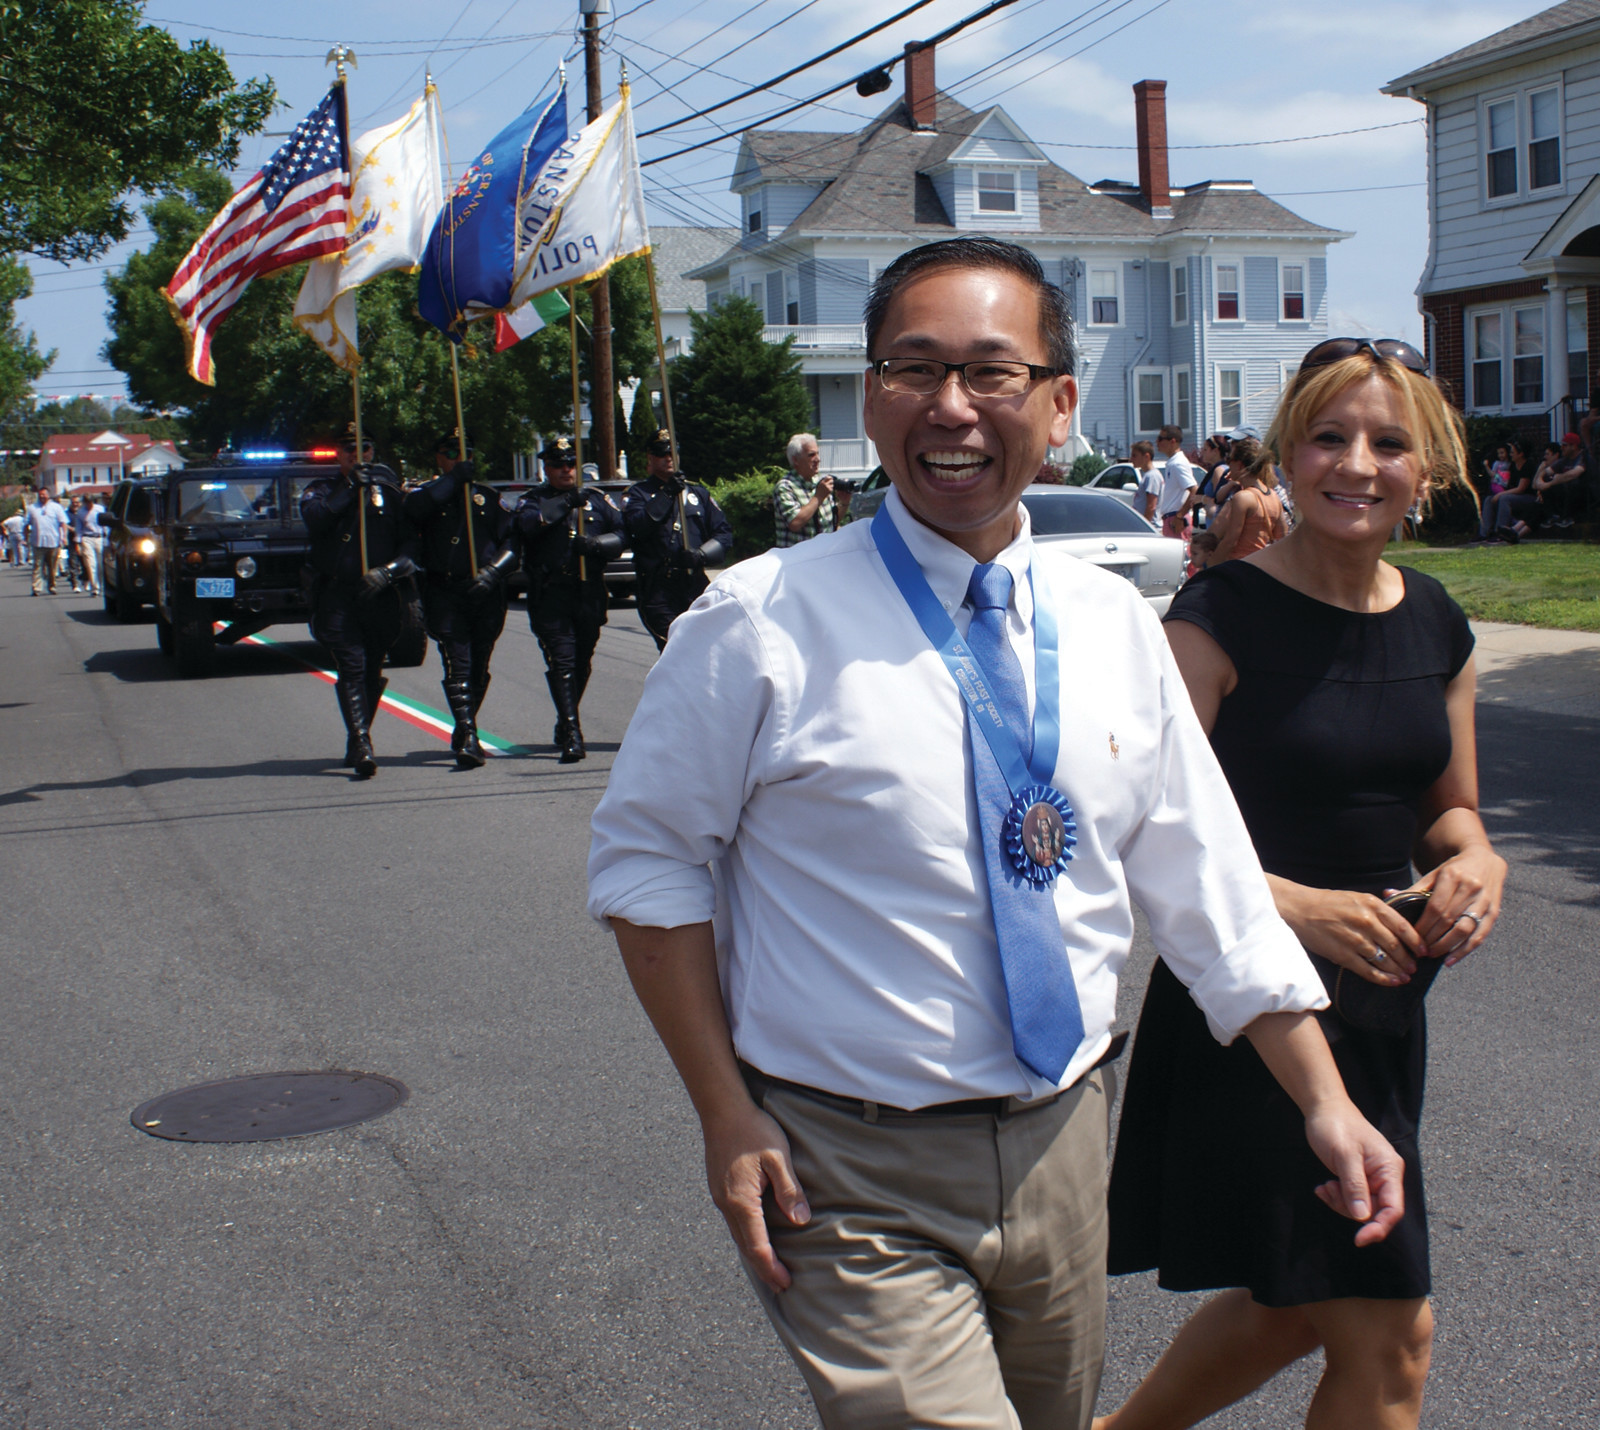 ALL SMILES: Cranston Mayor Allan Fung and his wife, Barbara Ann Fenton, marched in the parade on Sunday.